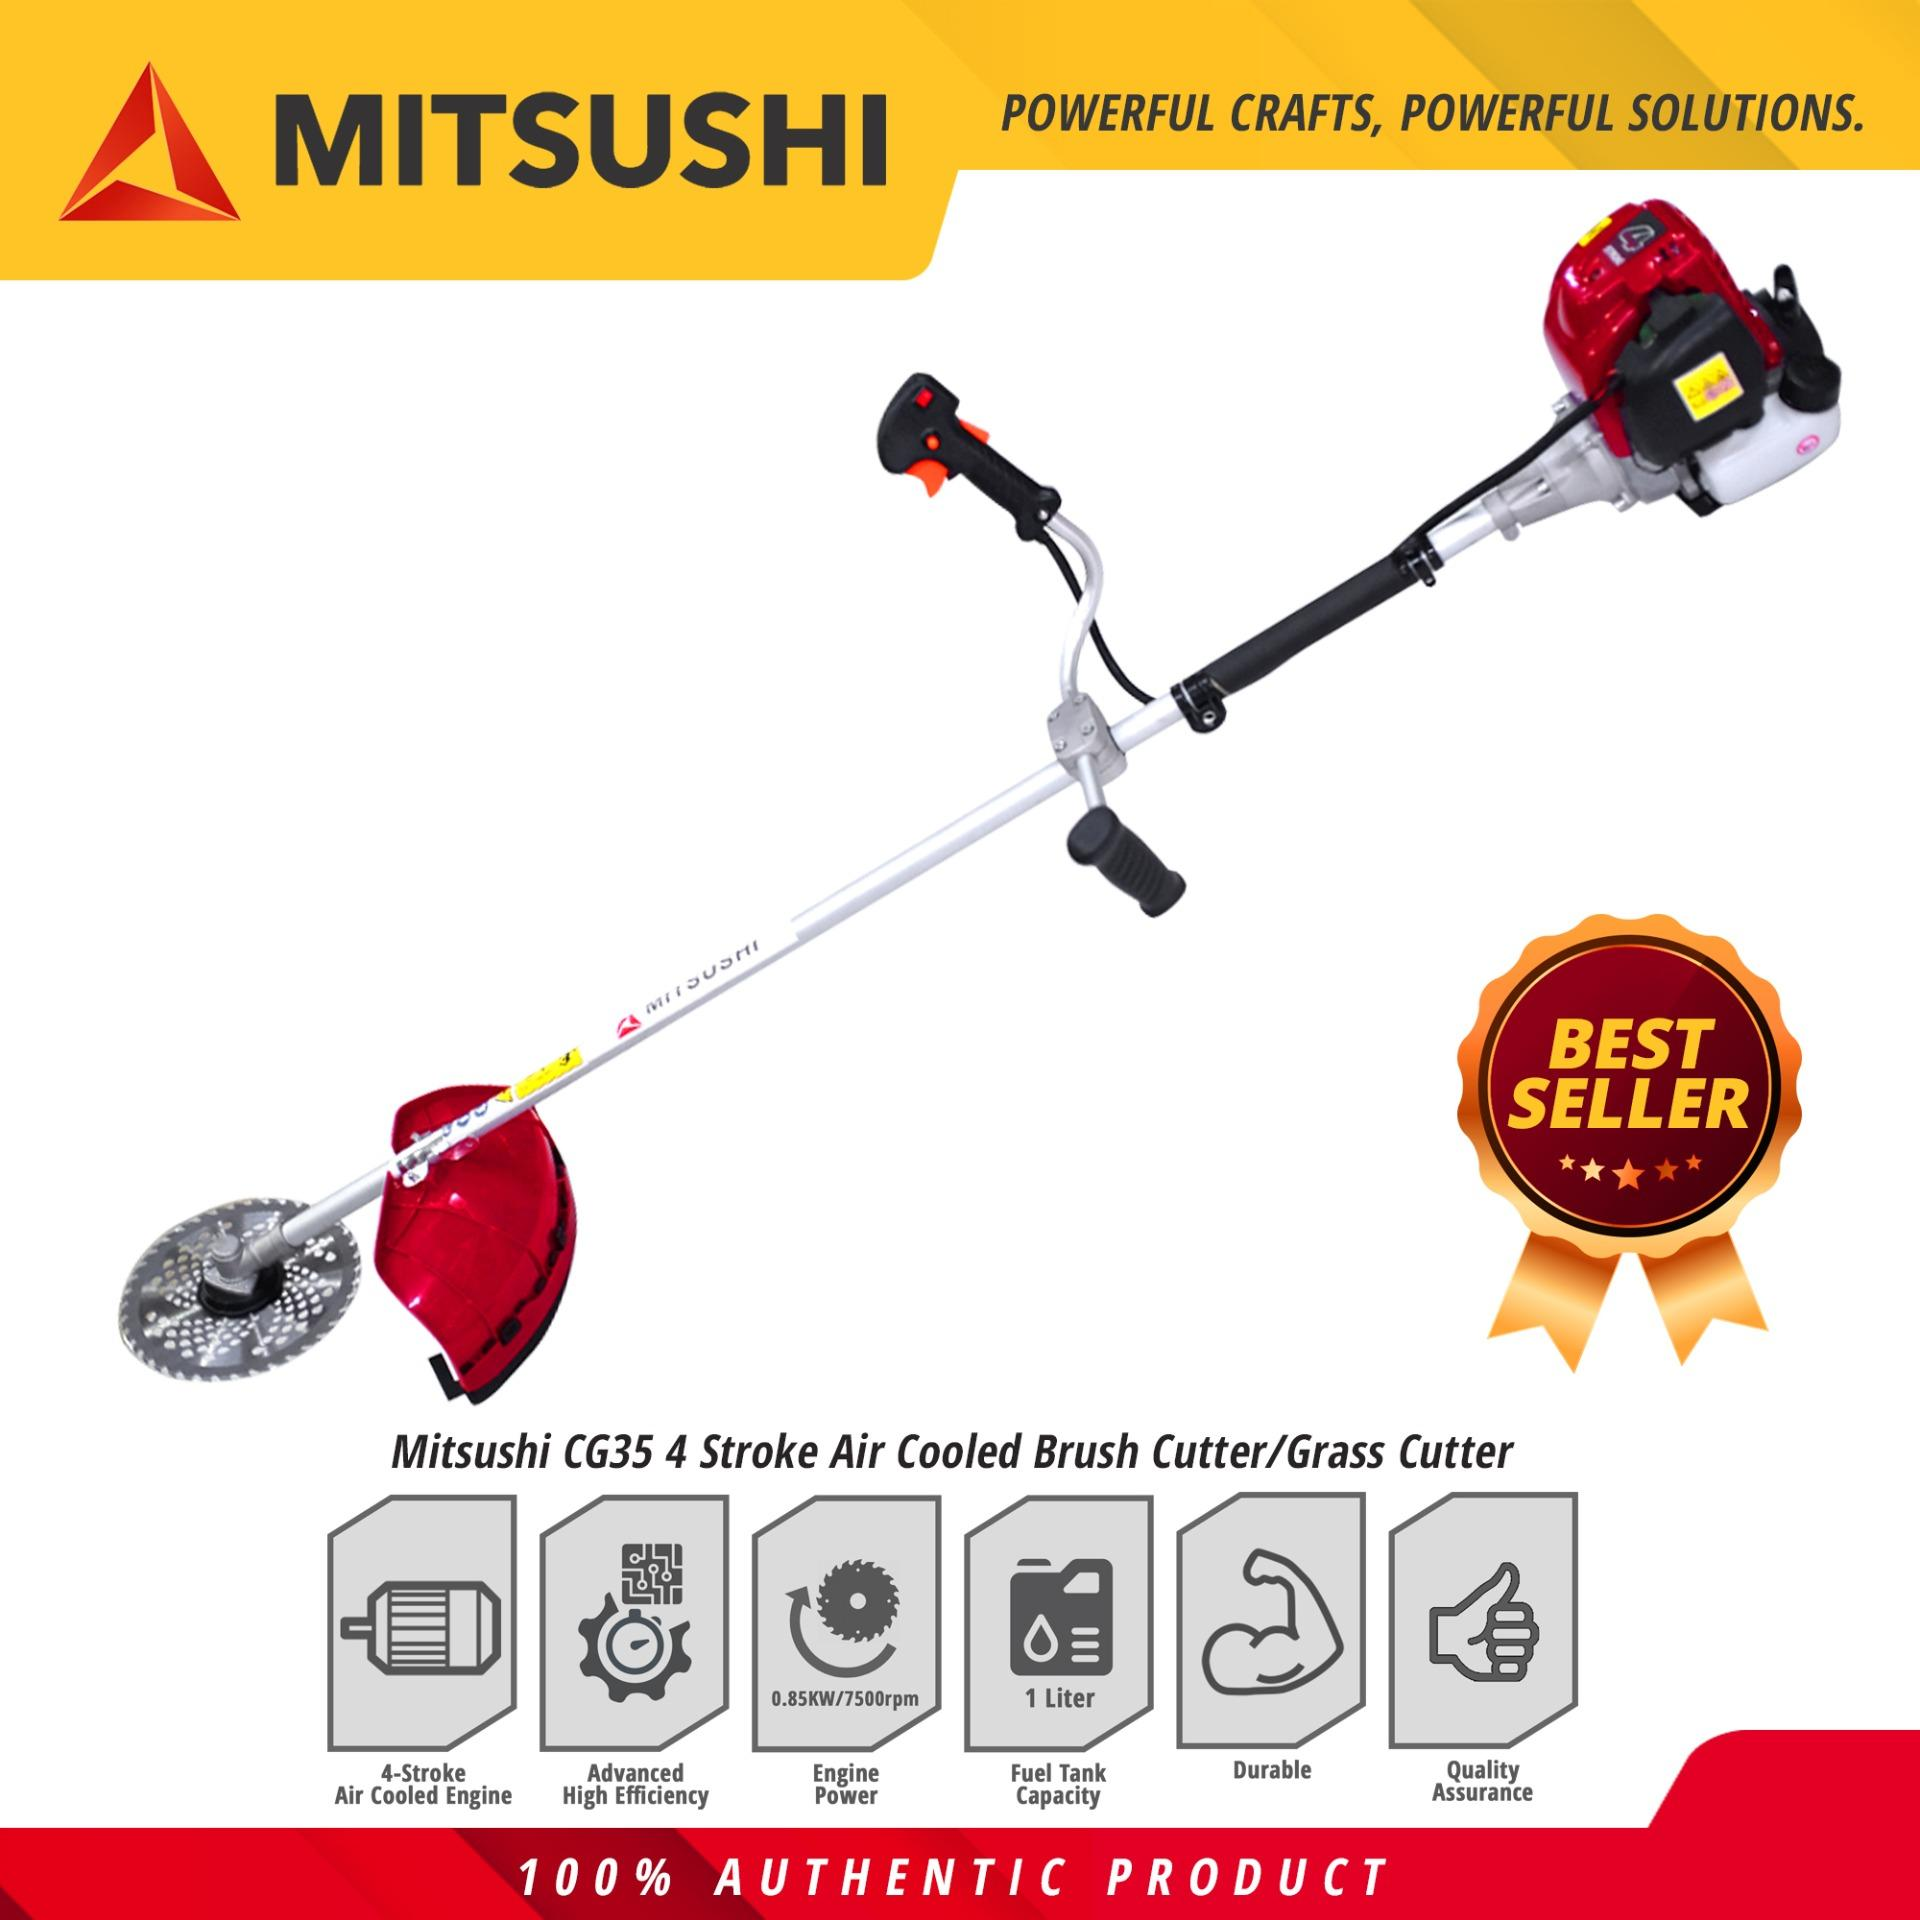 Mitsushi Cg35 4 Stroke Air Cooled Brush Cutter Grass Cutter Lawn Mower By Mitsushi.